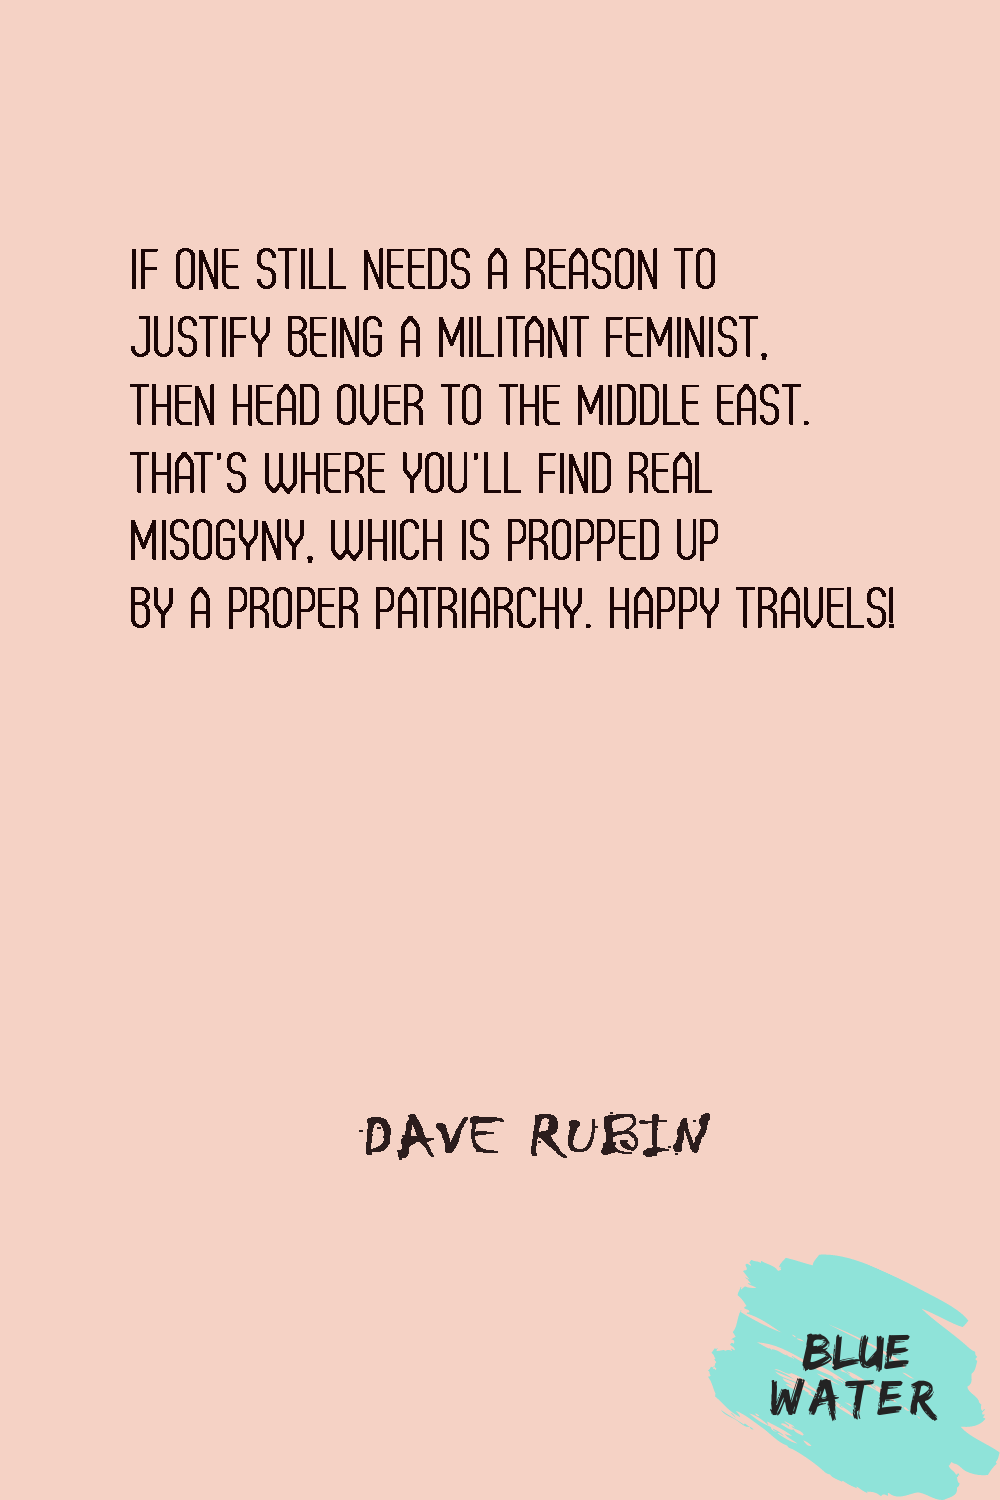 100 Women Empowerment And Feminism Quotes Dave Rubin In 2021 Feminism Quotes Sarcastic Quotes Funny Feminist Quotes Funny